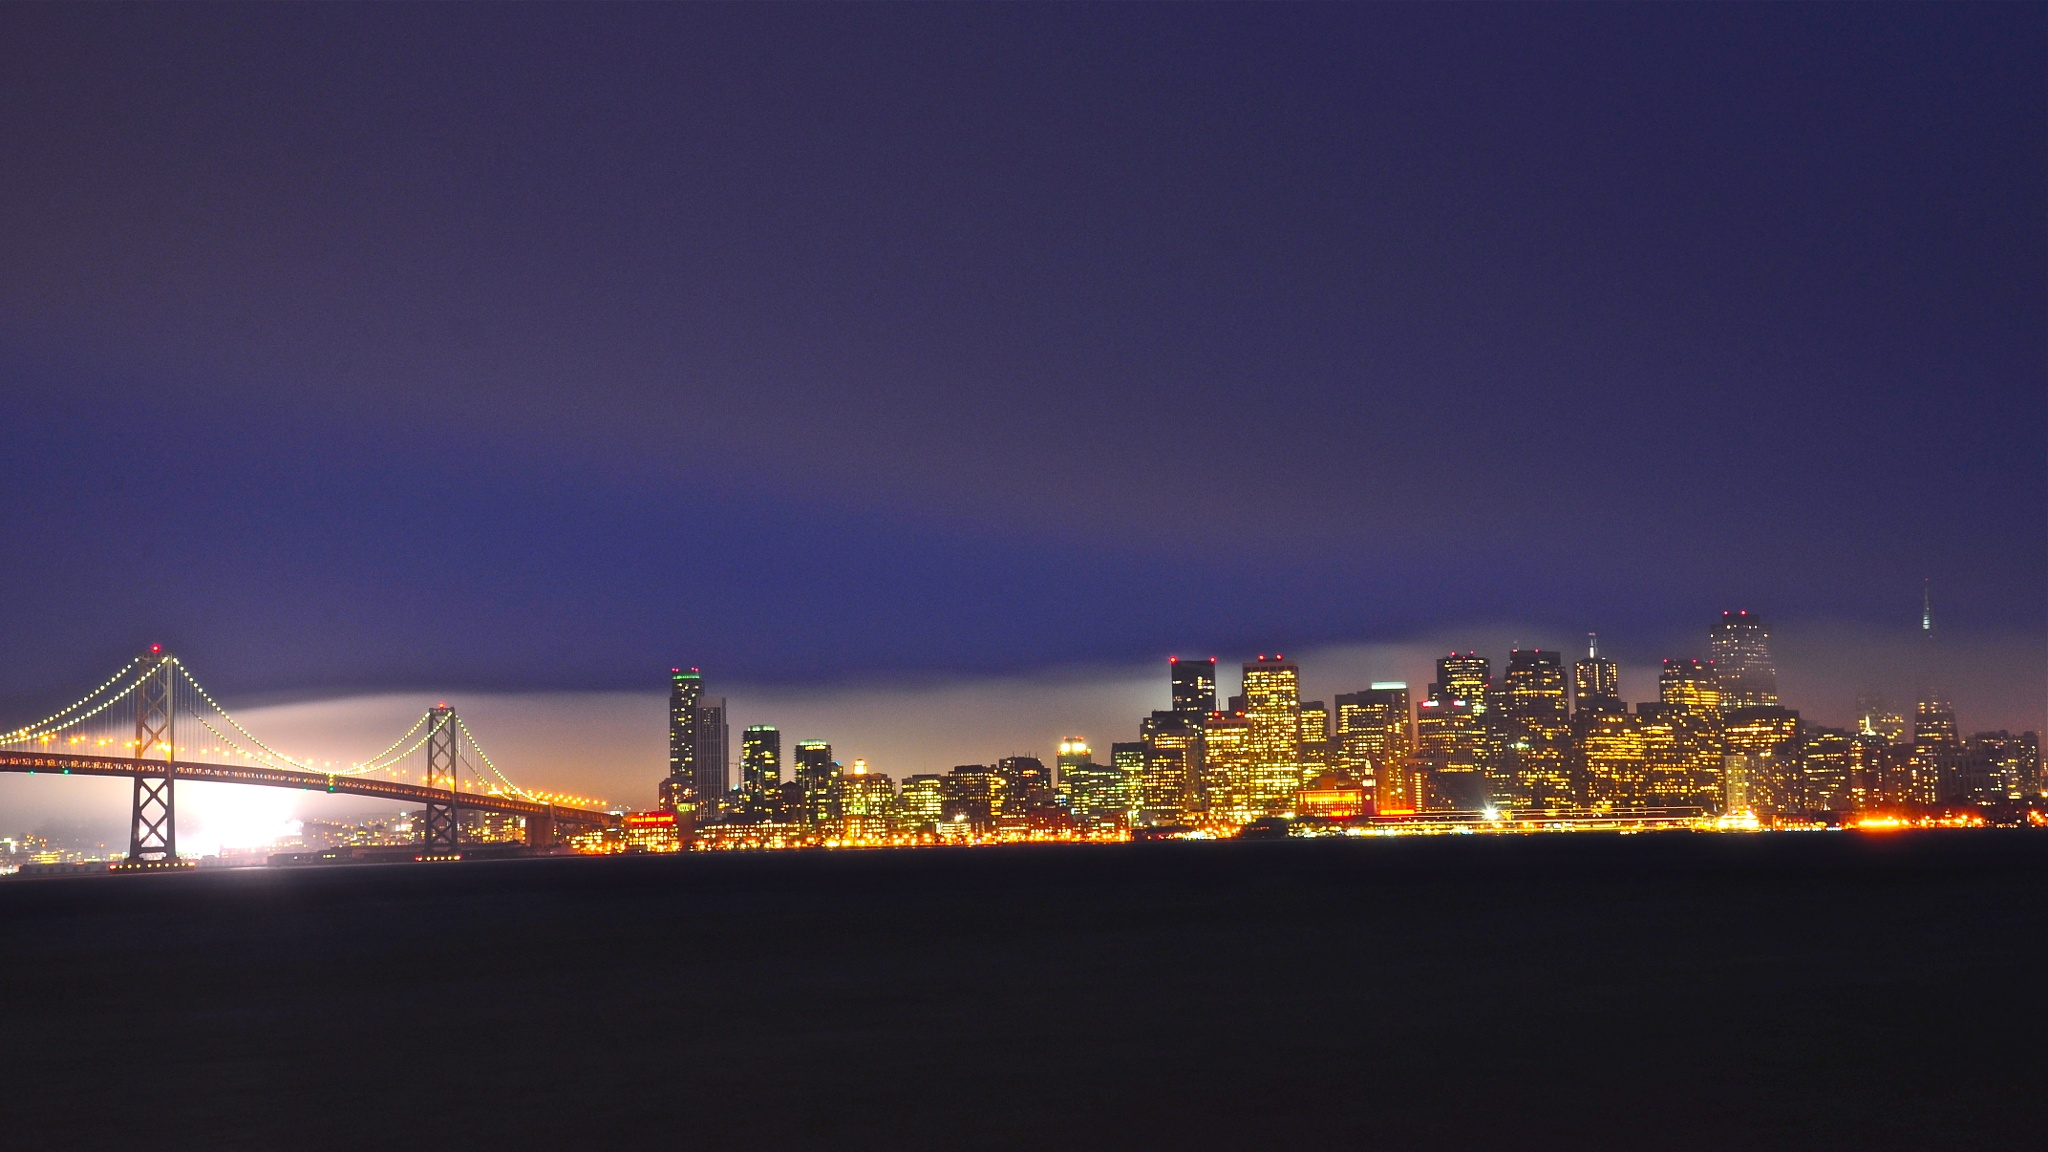 San Francisco night view by fjlian